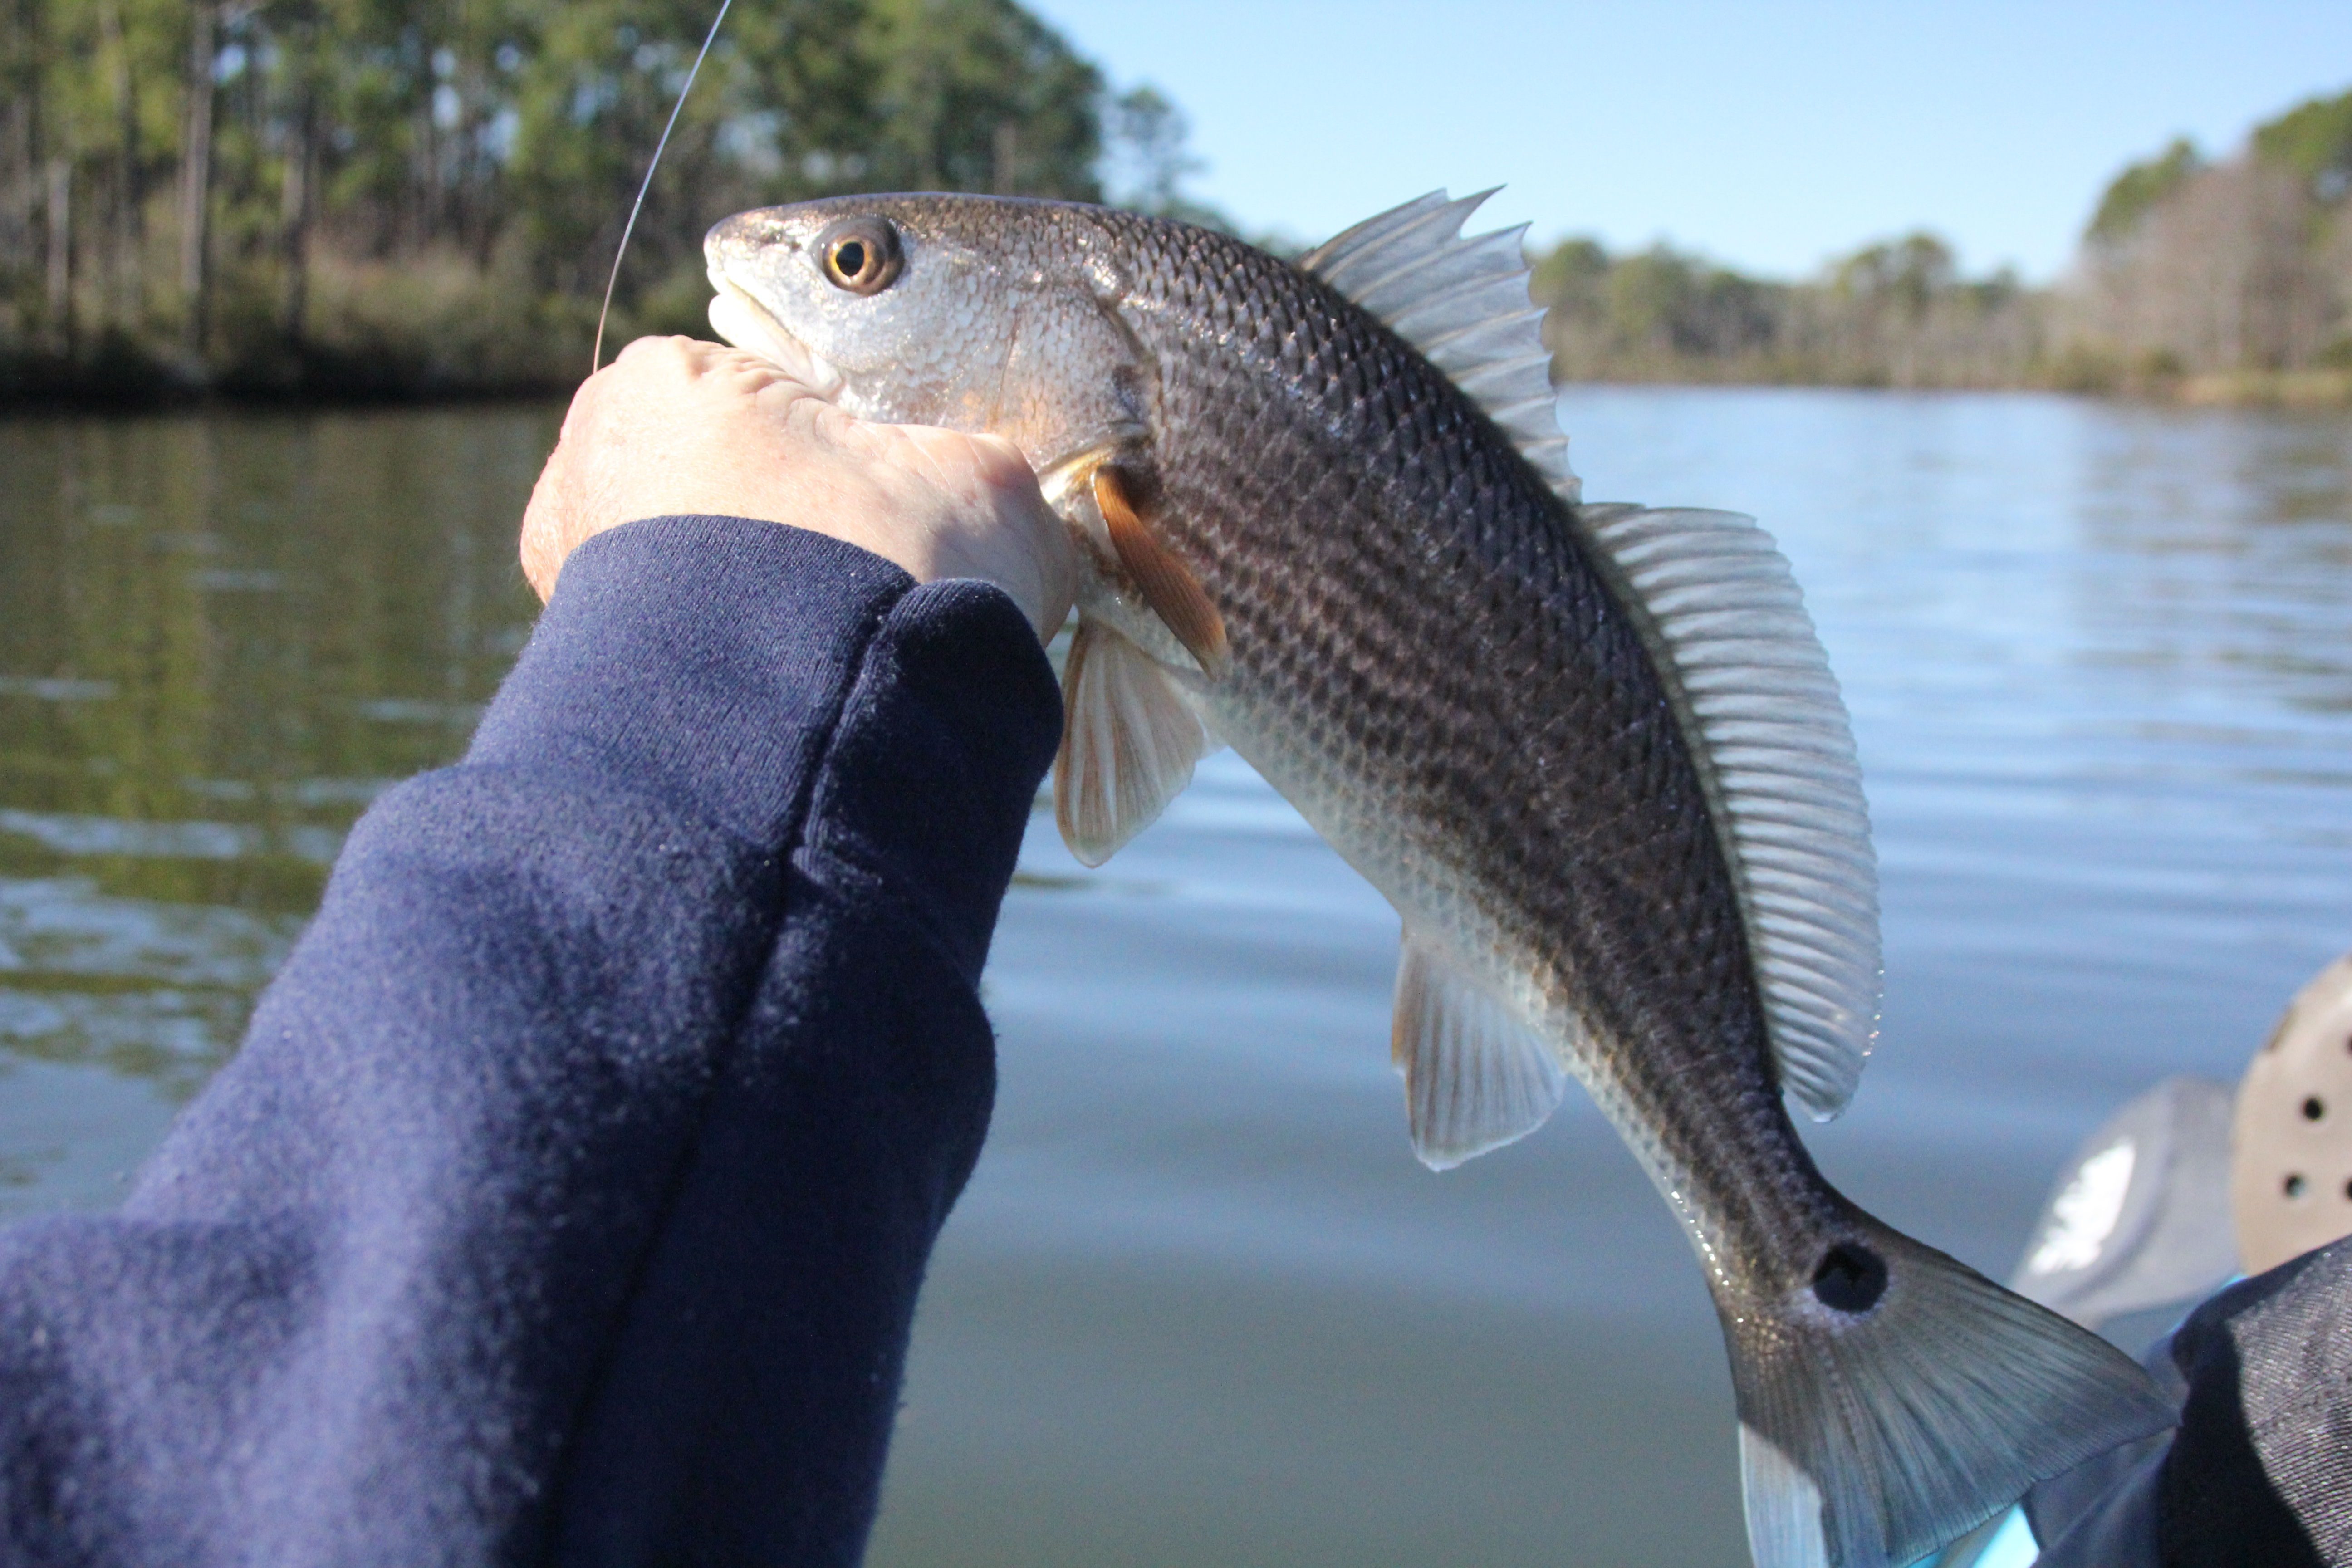 Fishing for redfish in the fall will provide a lower slot size redfish.